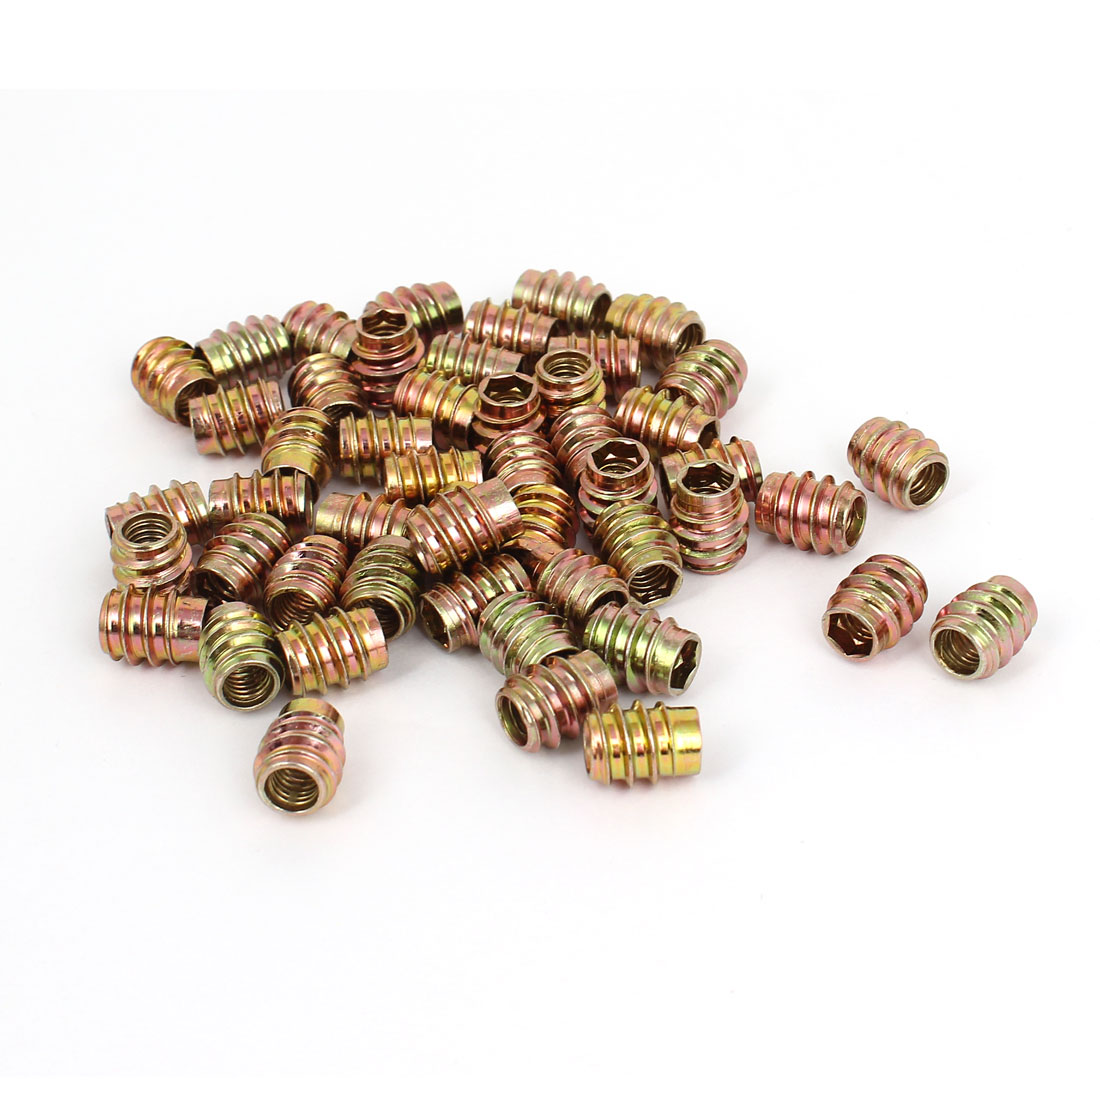 50 Pcs M6x13mm E-Nut Hexagonal Socket Screws Wood Insert Nuts for Furniture